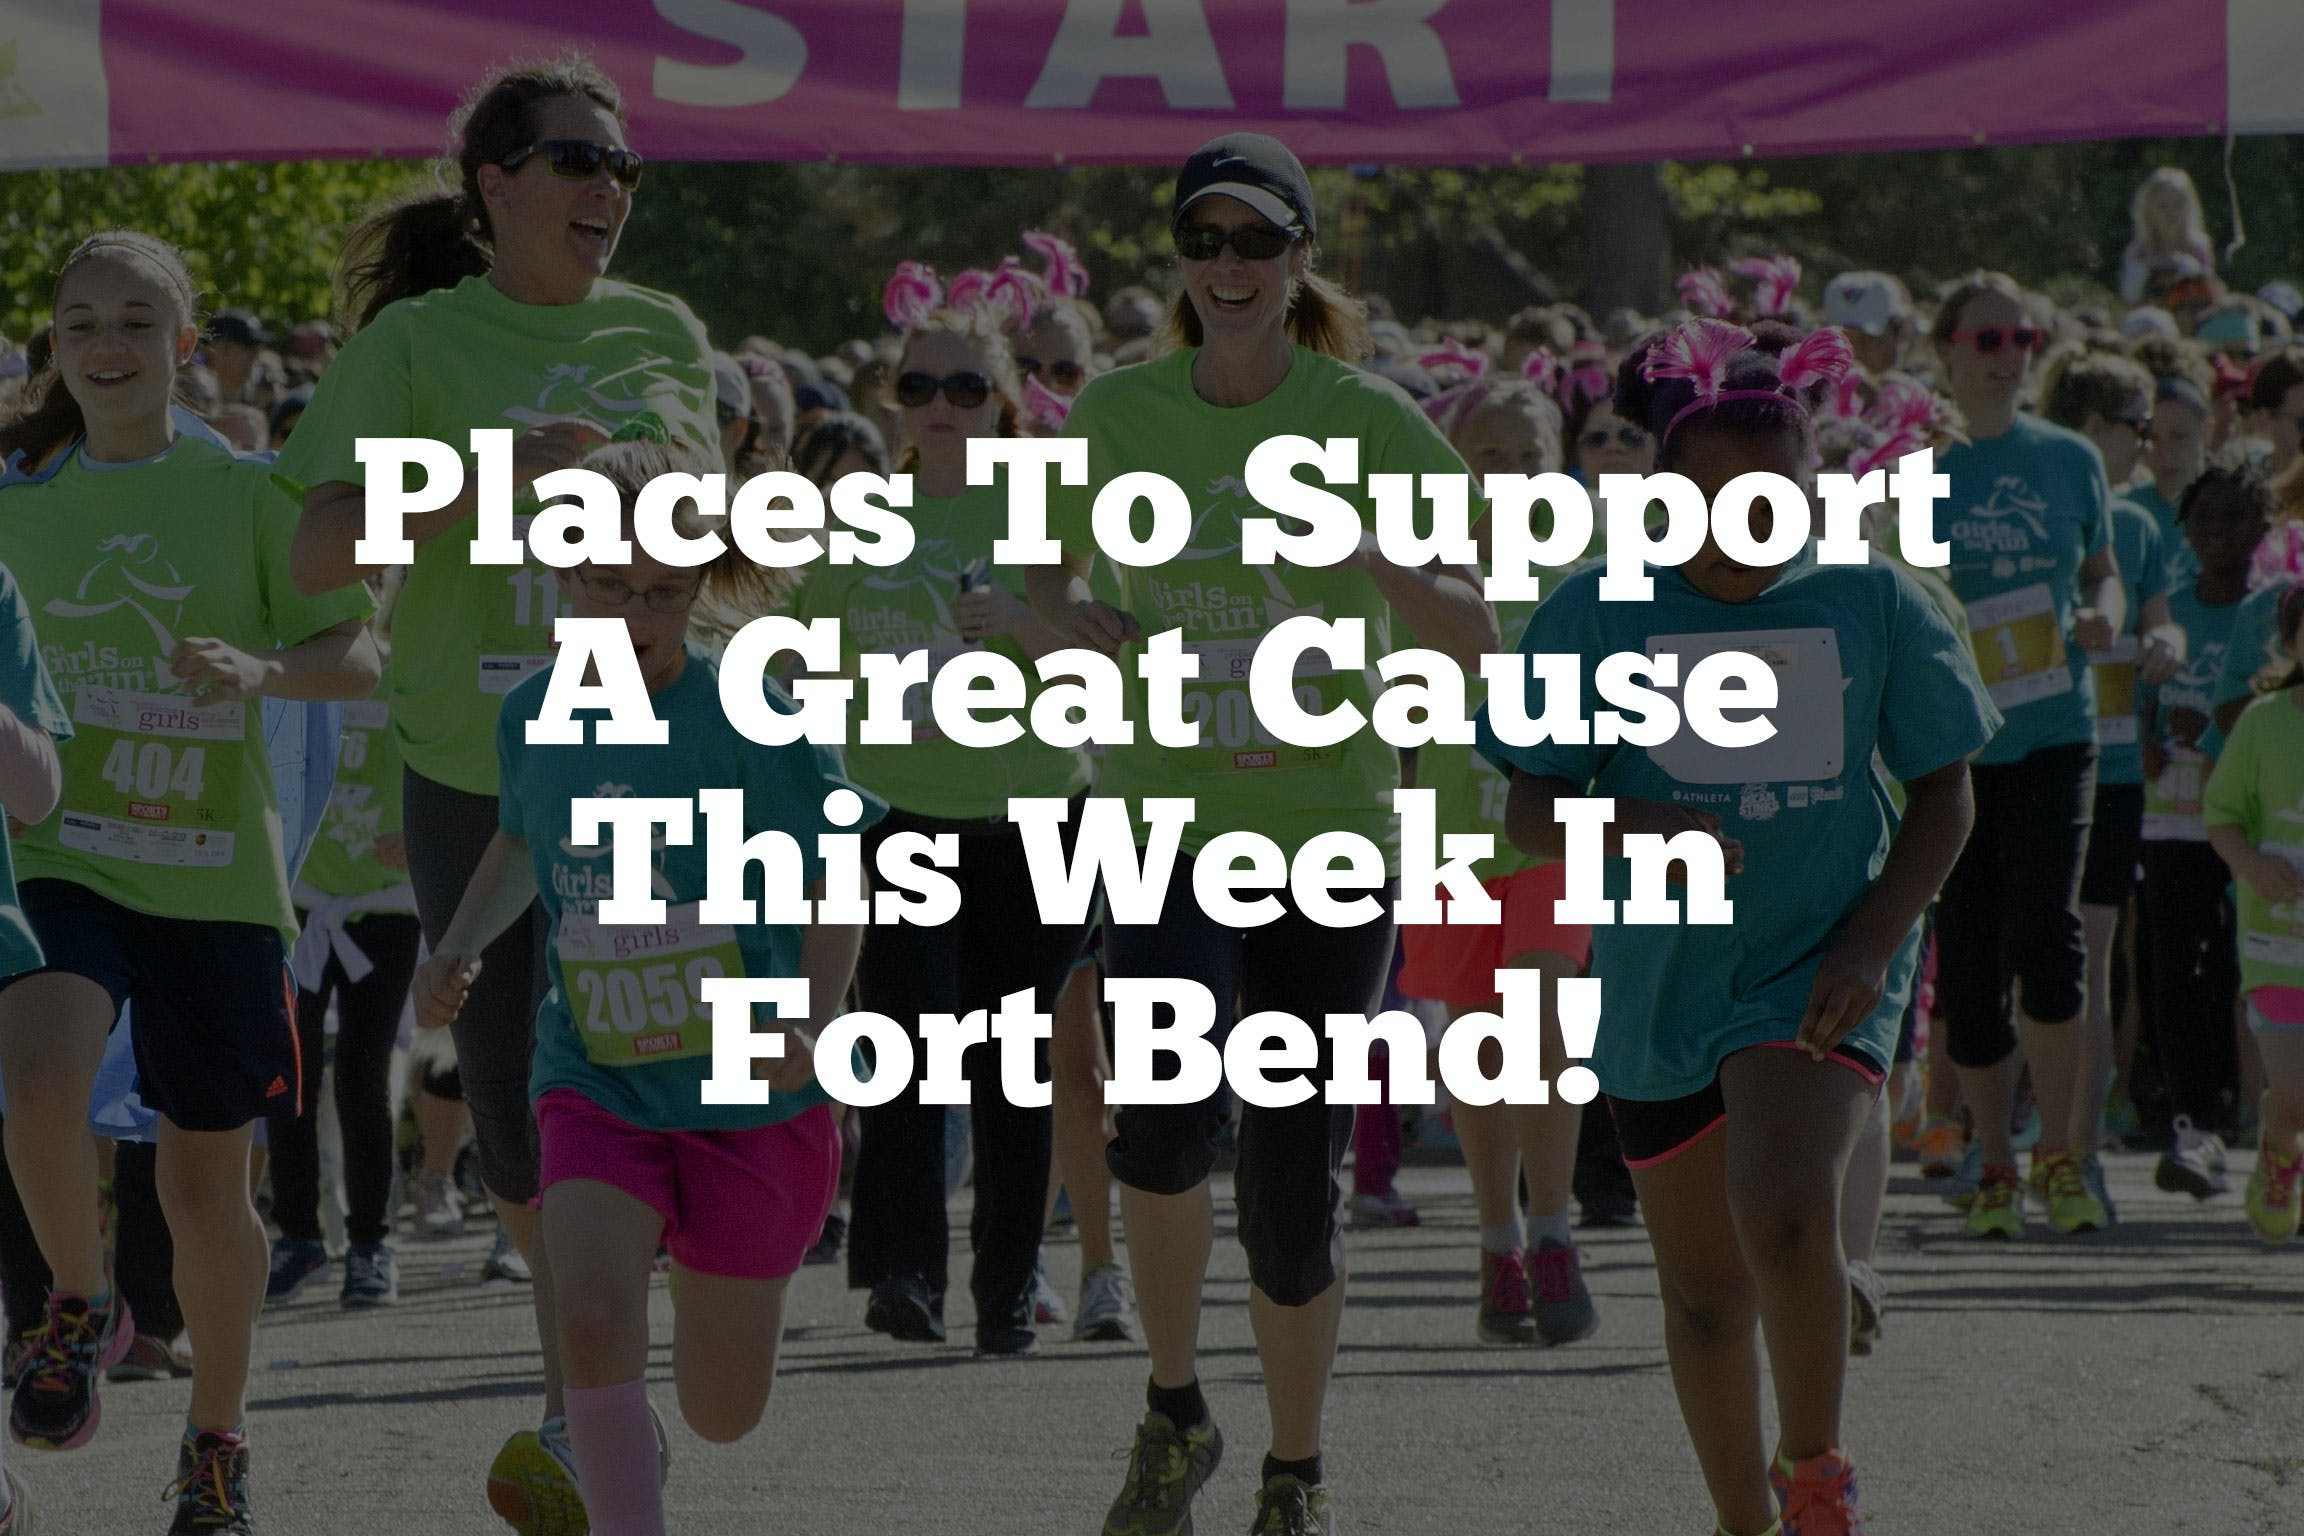 Places-To-Support-A-Great-Cause-This-Week-In-Fort-Bend